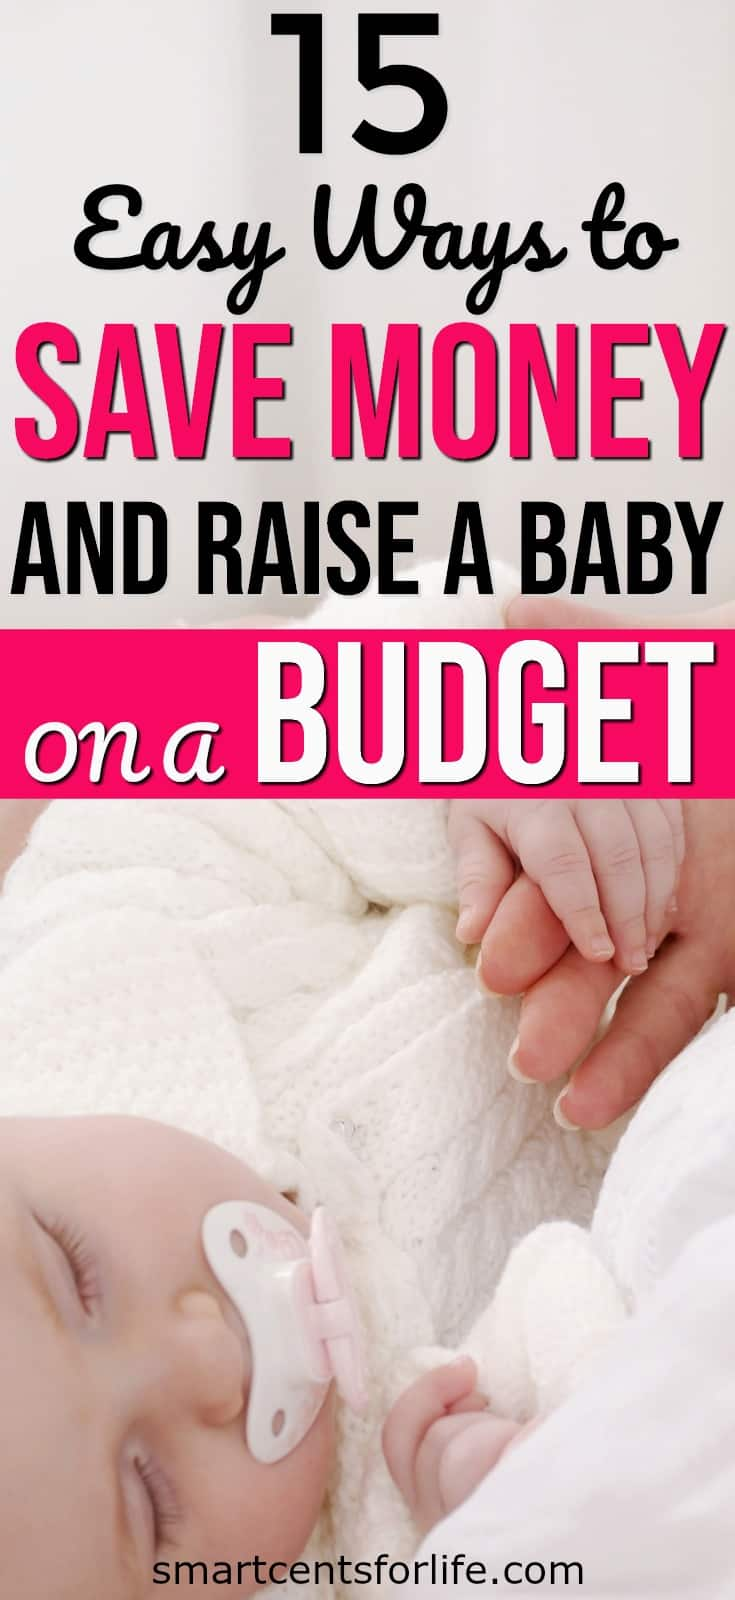 Whether you are expecting your first baby or not, Check out these tips on how to save money and raise a baby on a budget! Yes, having a baby on a small budget it's possible! This list will show you how you can prepare for a new baby on a tight budget. How to save money on a baby, budget, frugal living tips, money saving tips, frugal living #frugalliving #budget #moneysavingtips